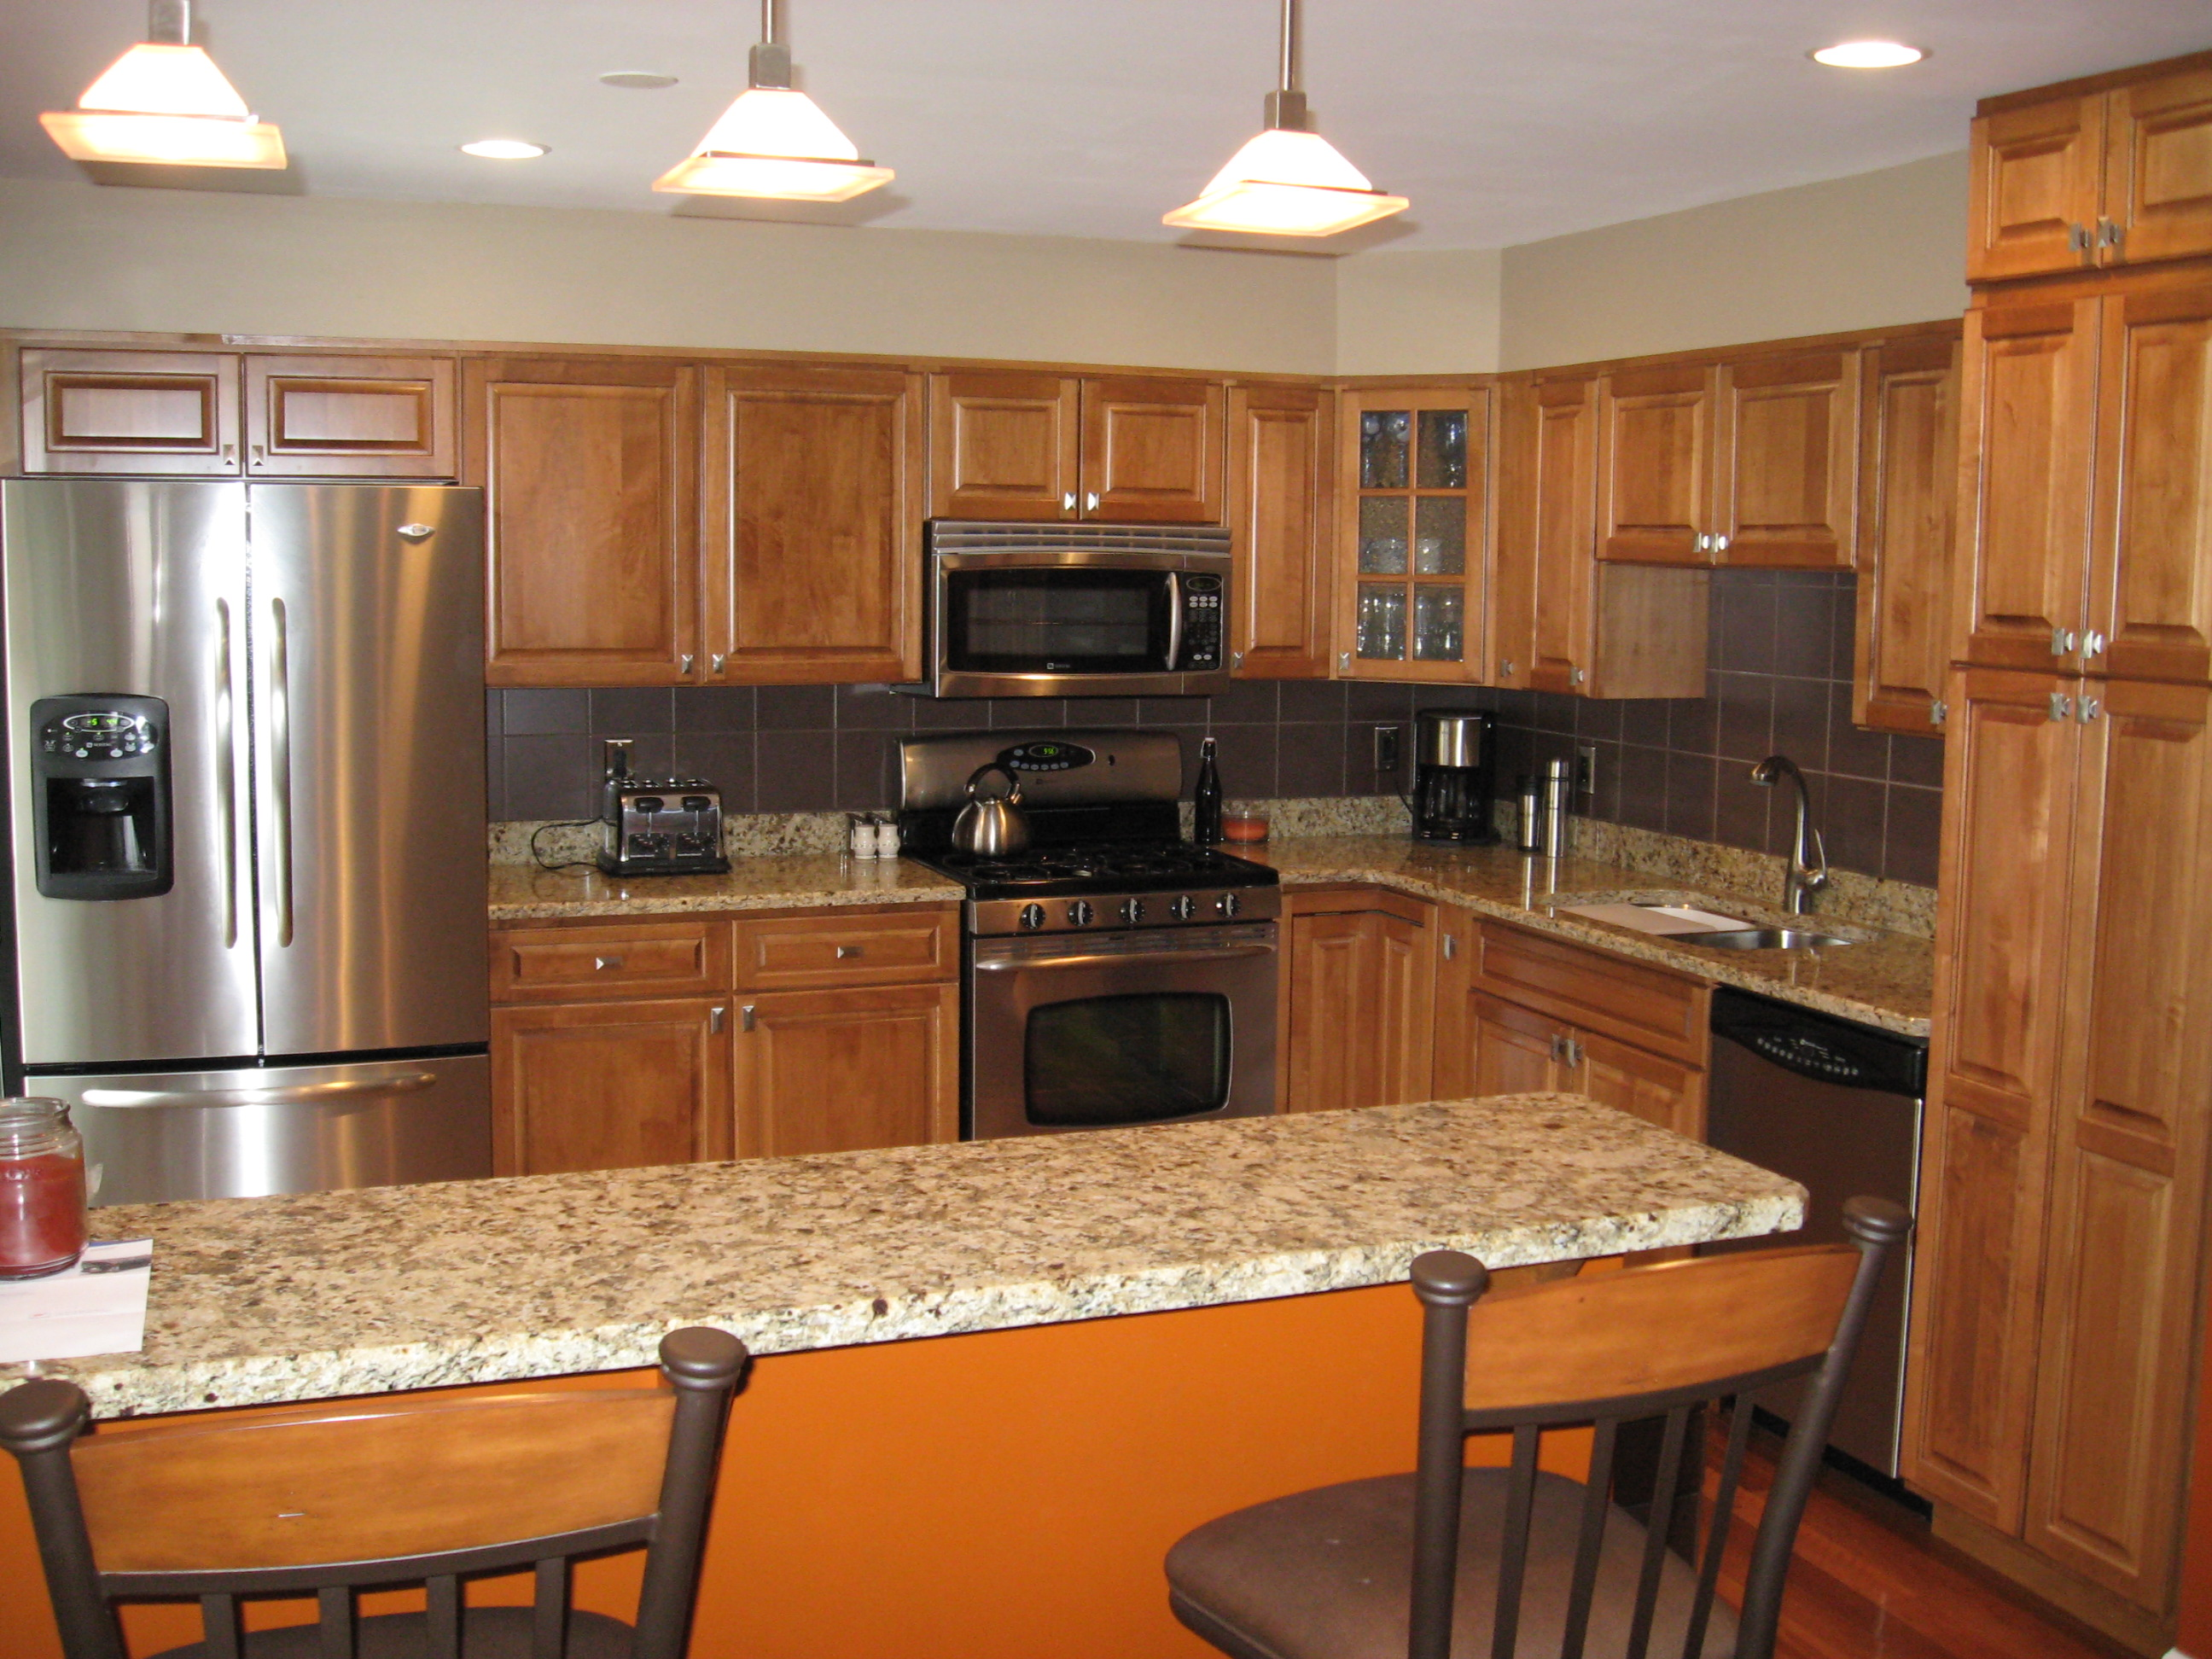 Kitchen Remodeling Ideas With Regard To Kitchen Remodeling